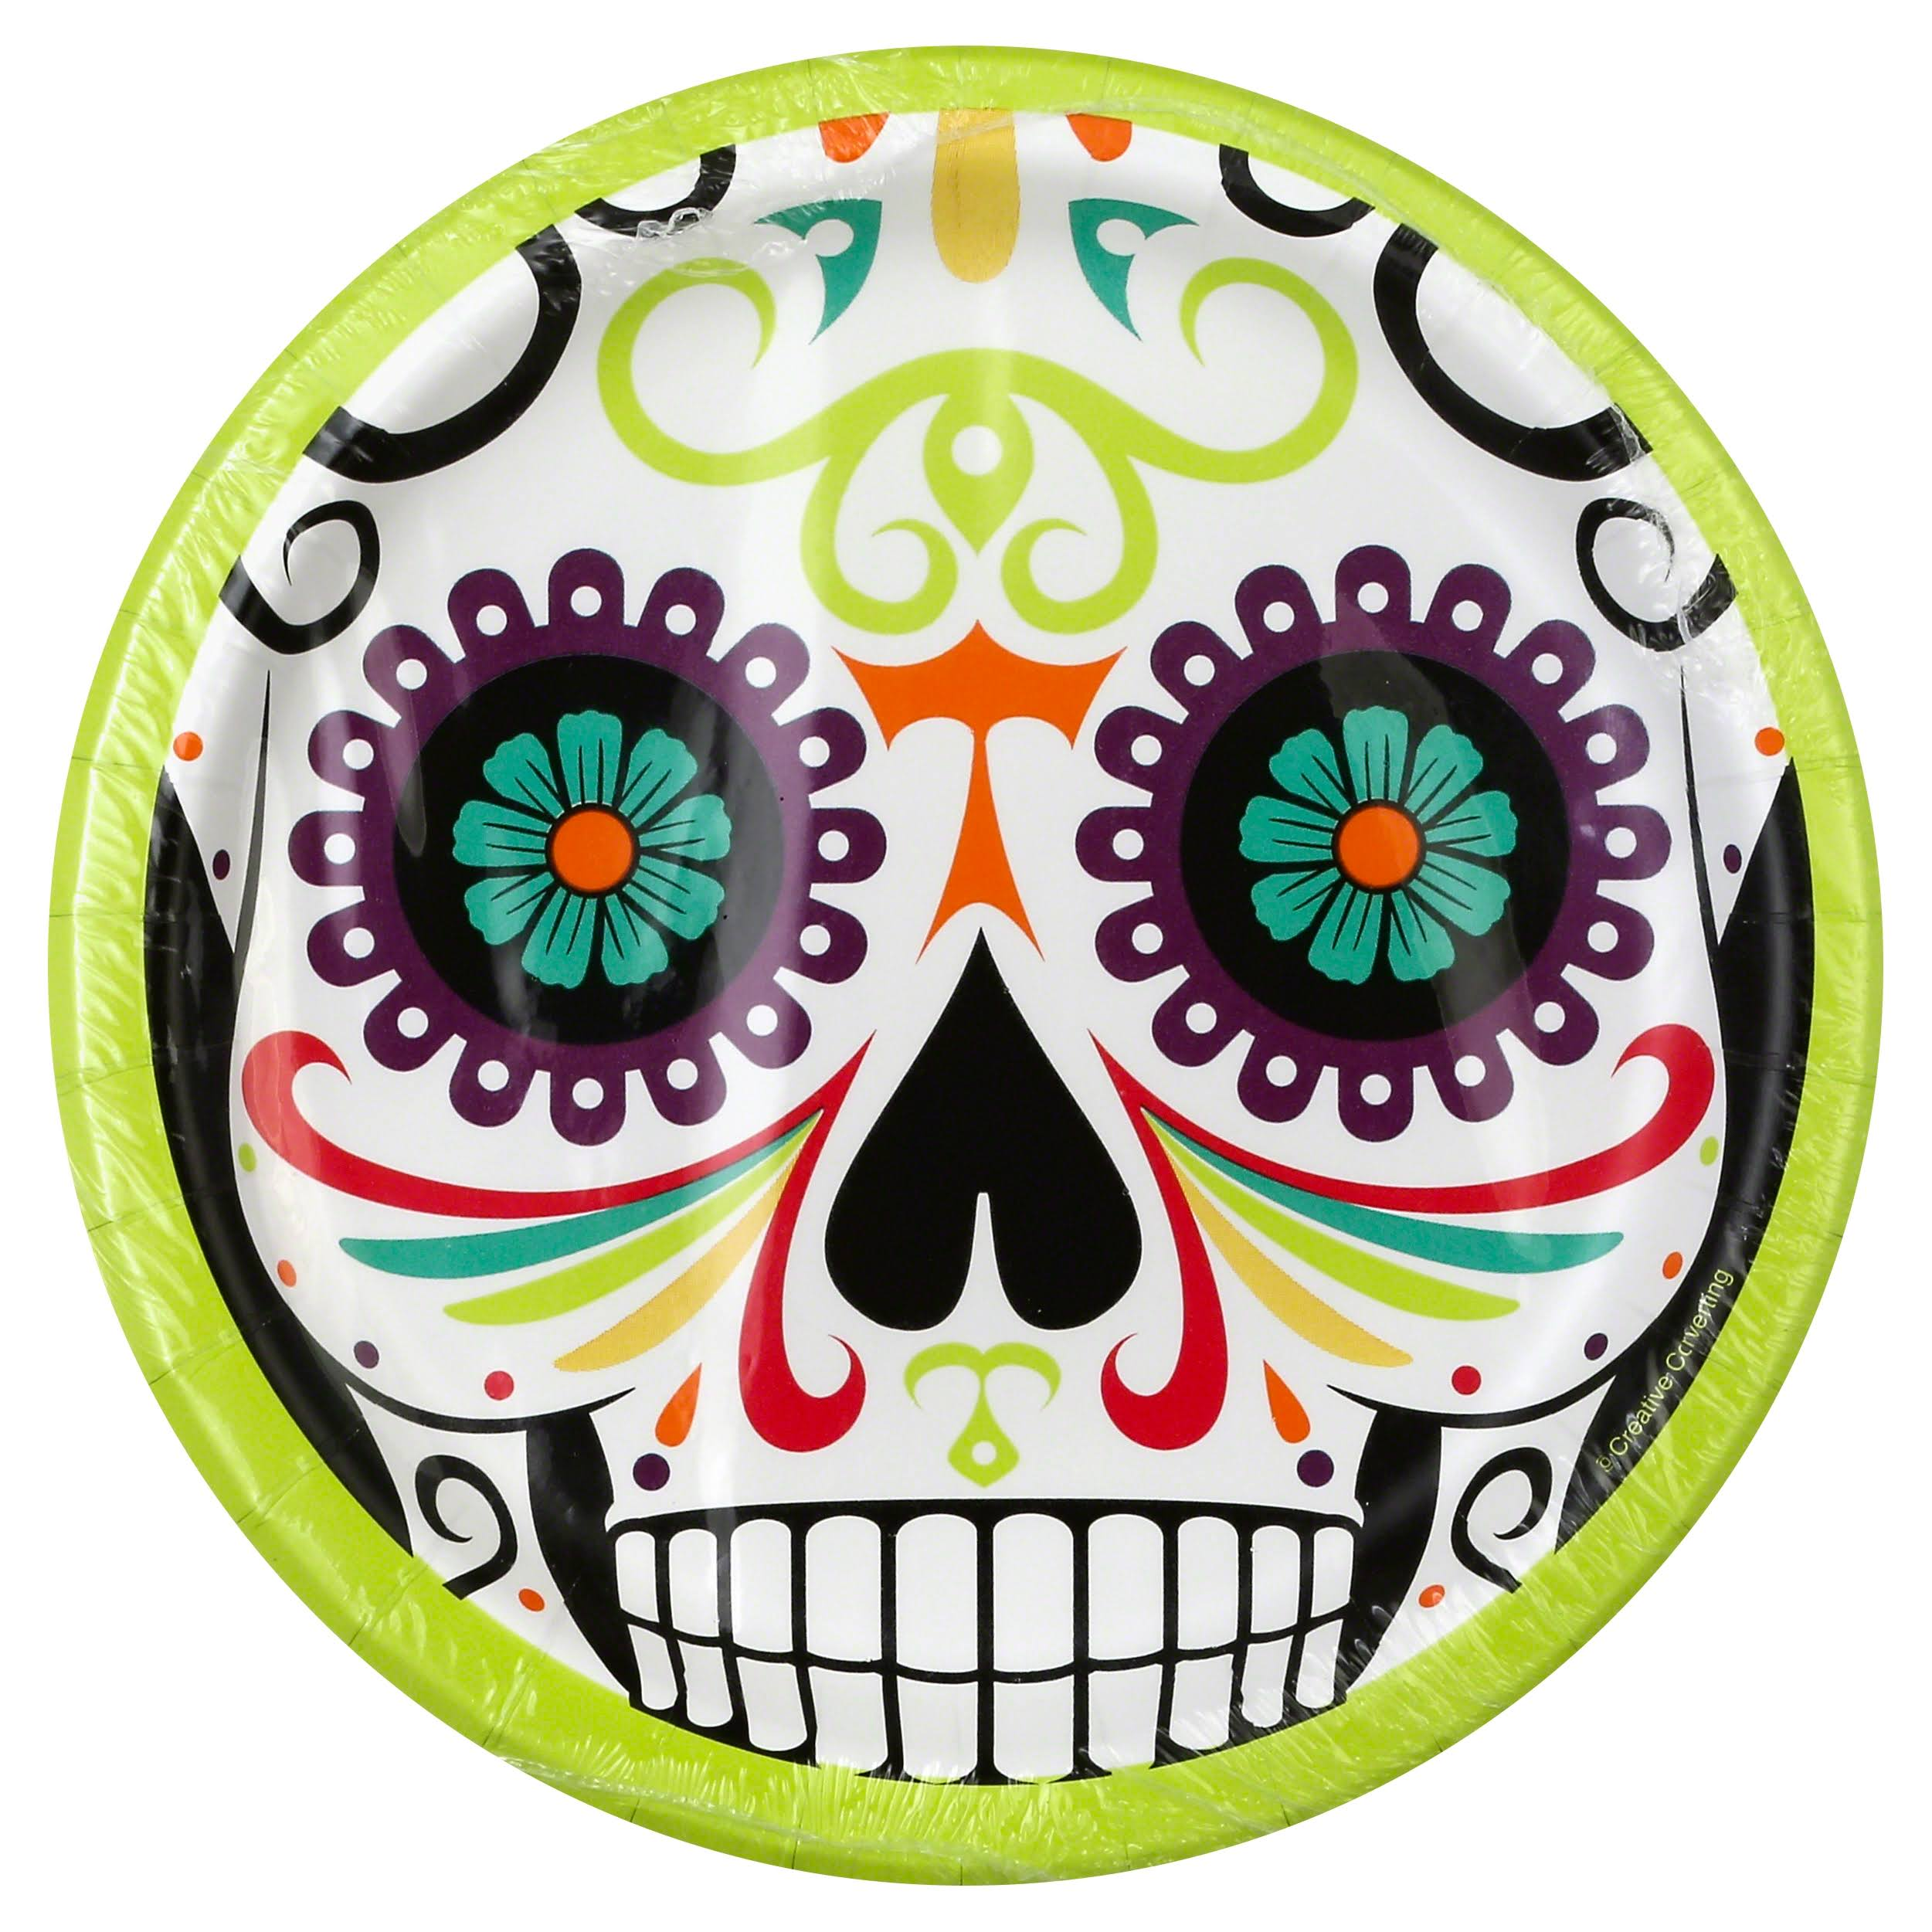 Party Creations Sturdy Style Plates, Premium Strength, Skelebration, 6-7/8 Inch - 8 plates